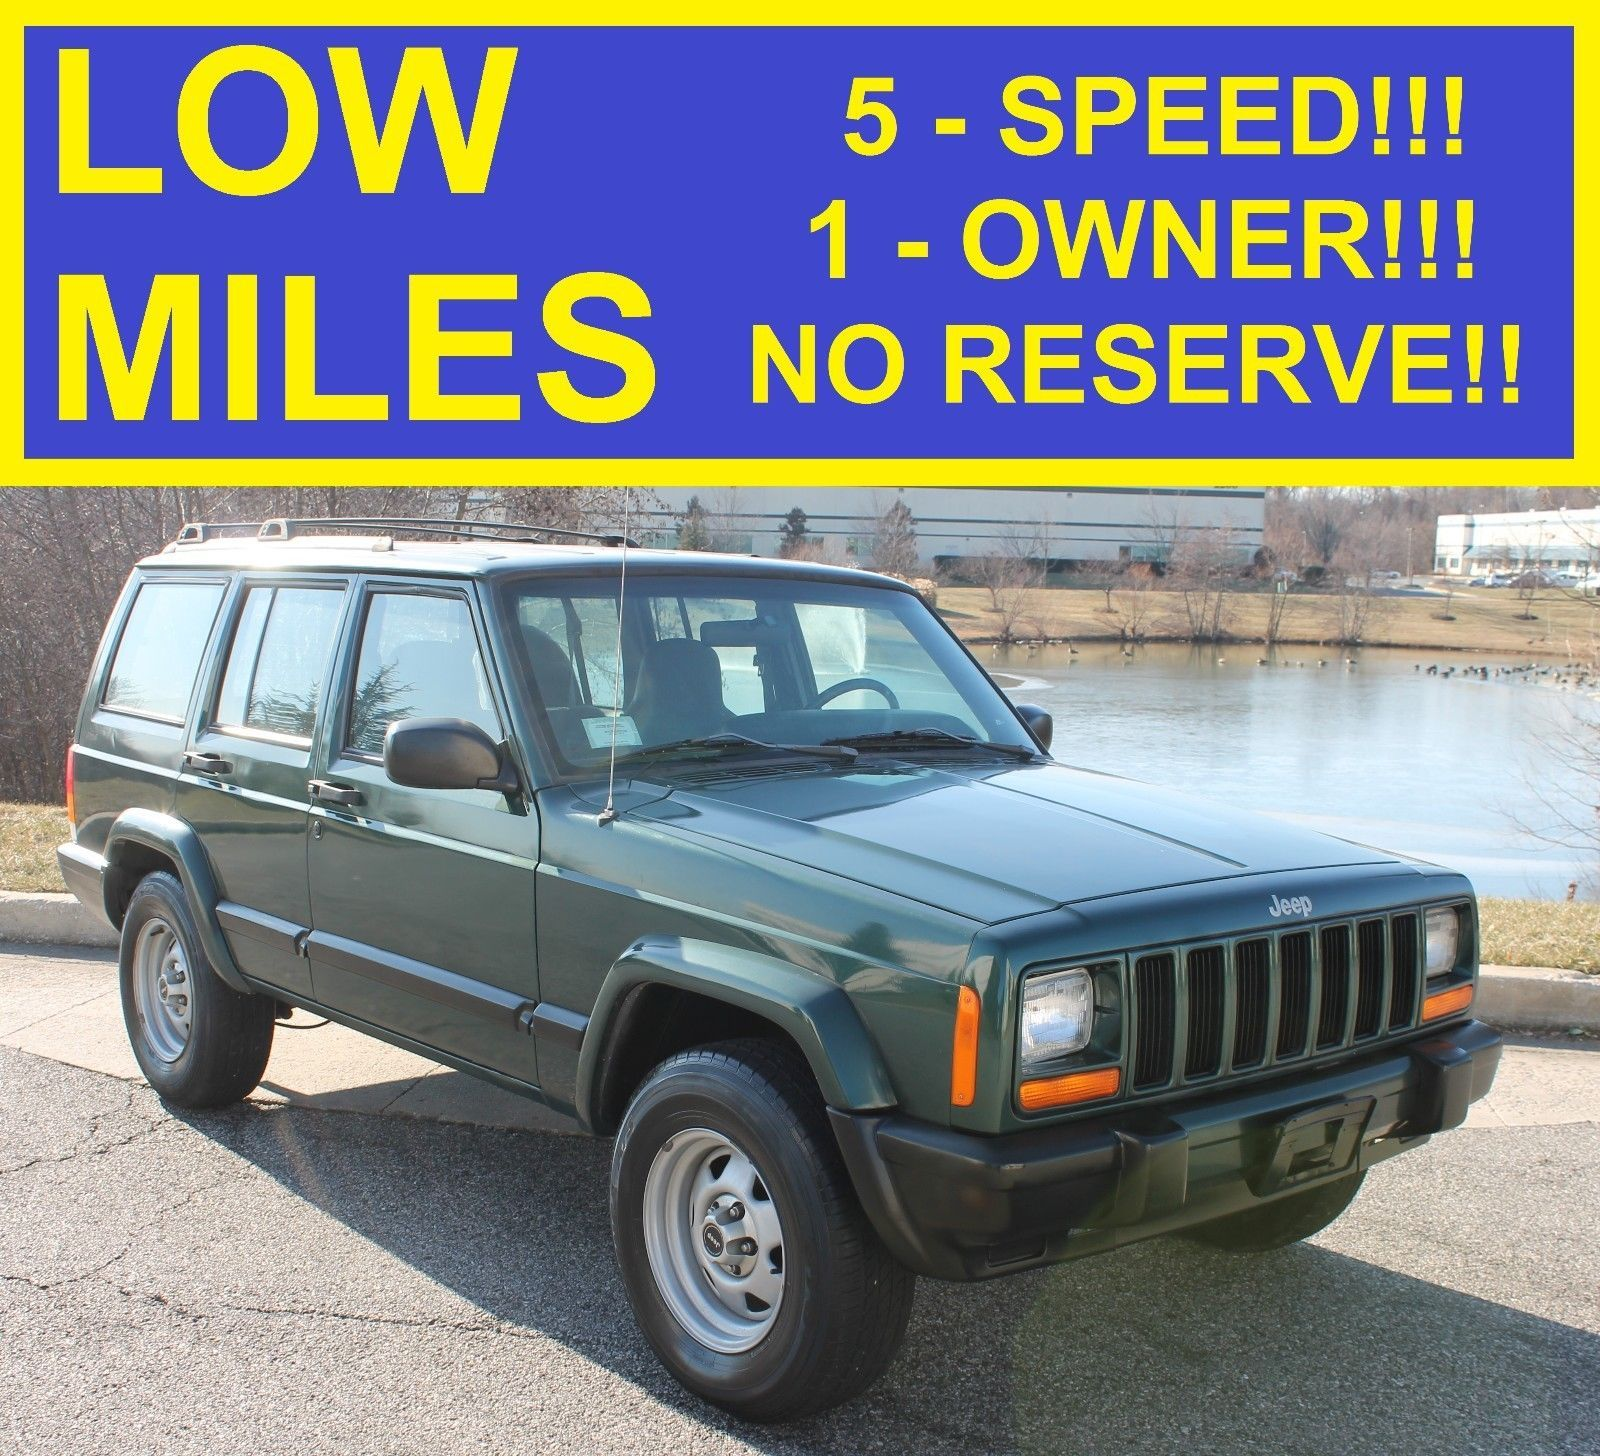 eBay: 1999 Jeep Cherokee SPORT NO RESERVE 123K MANUAL 1-OWNER 1999 JEEP  CHEROKEE 4X4 SPORT! LIMITED 00 01 98 97 #jeep #jeeplife